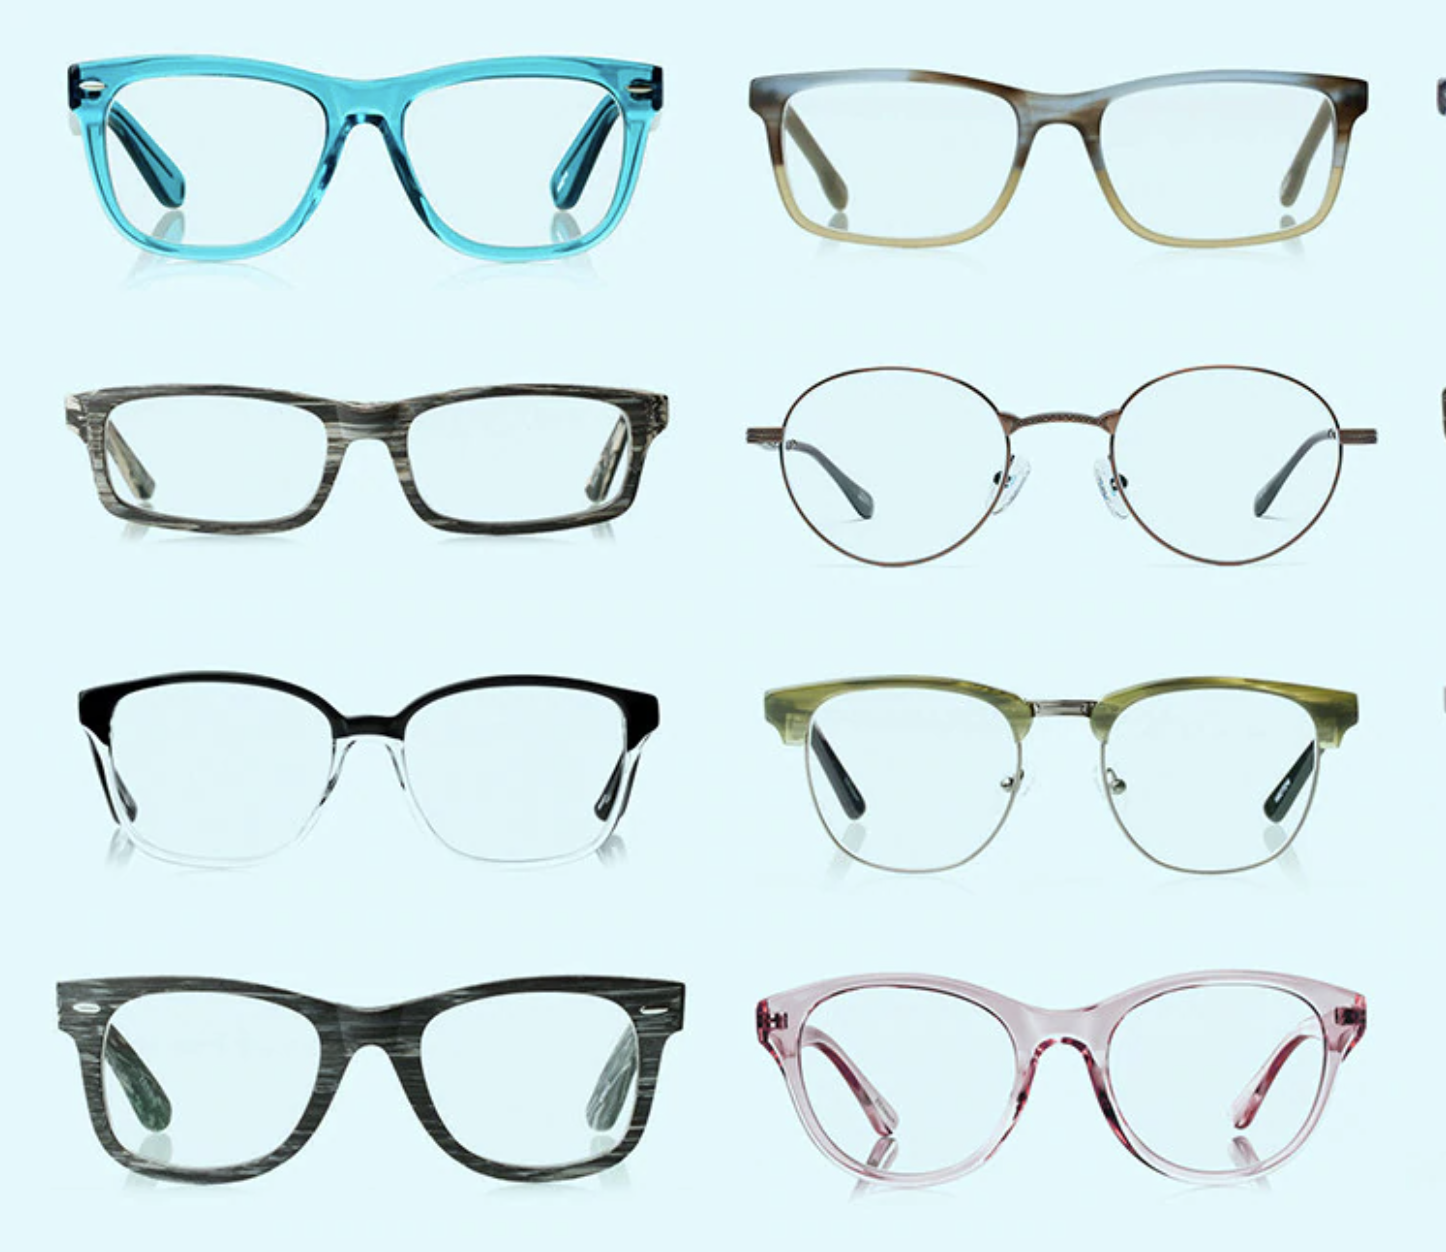 Zenni Optical Reviews: Are Their Affordable Styles Legit?